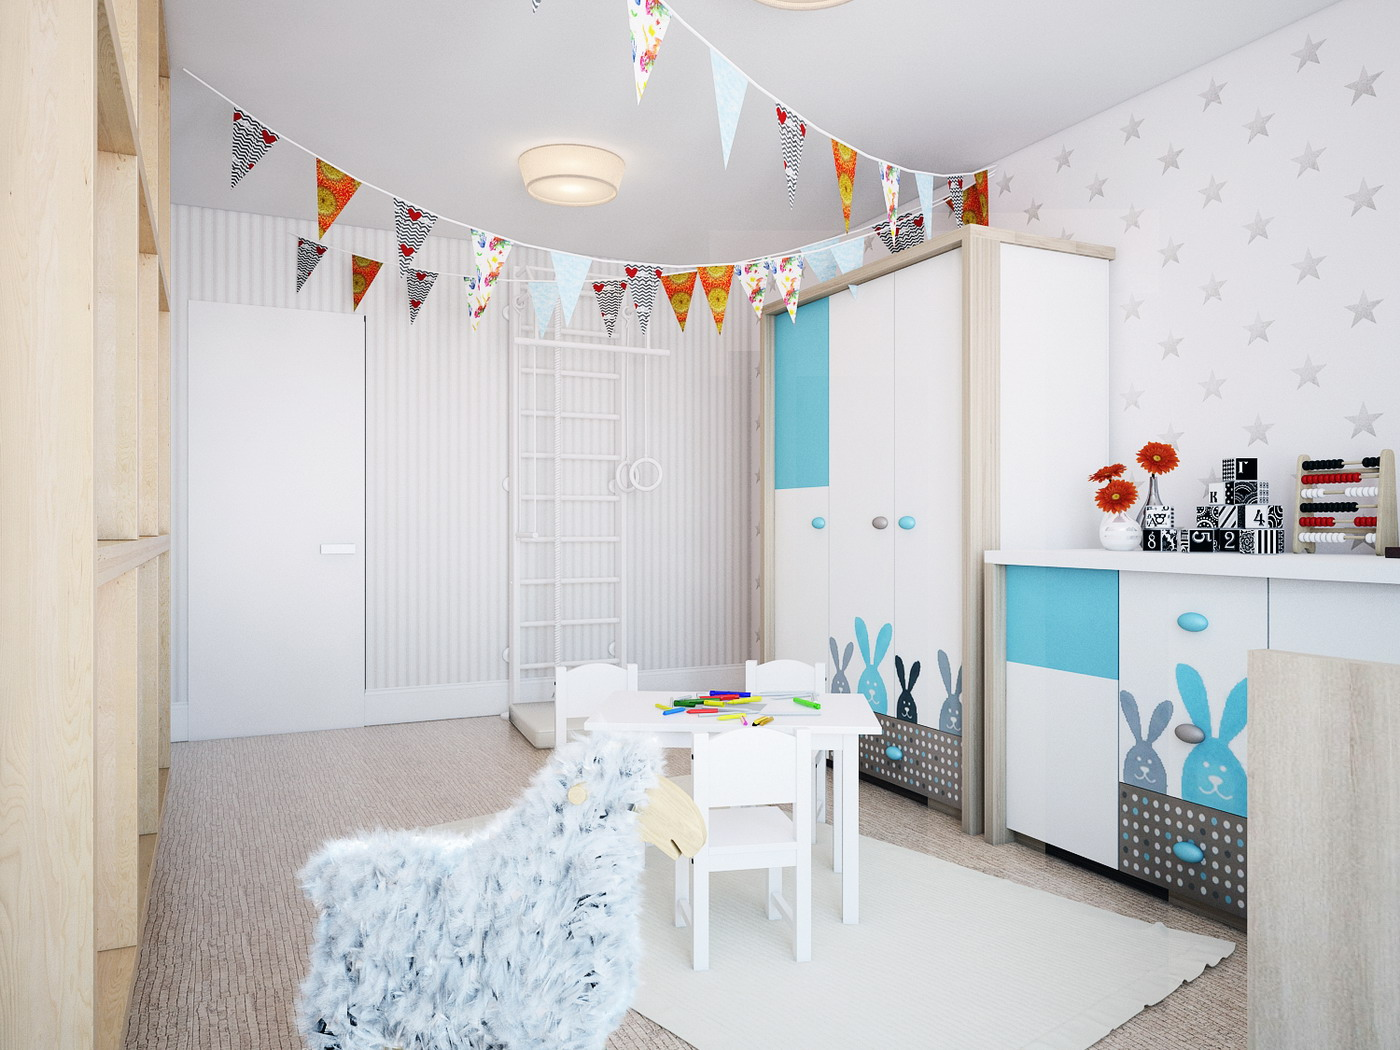 Childstarroom 2